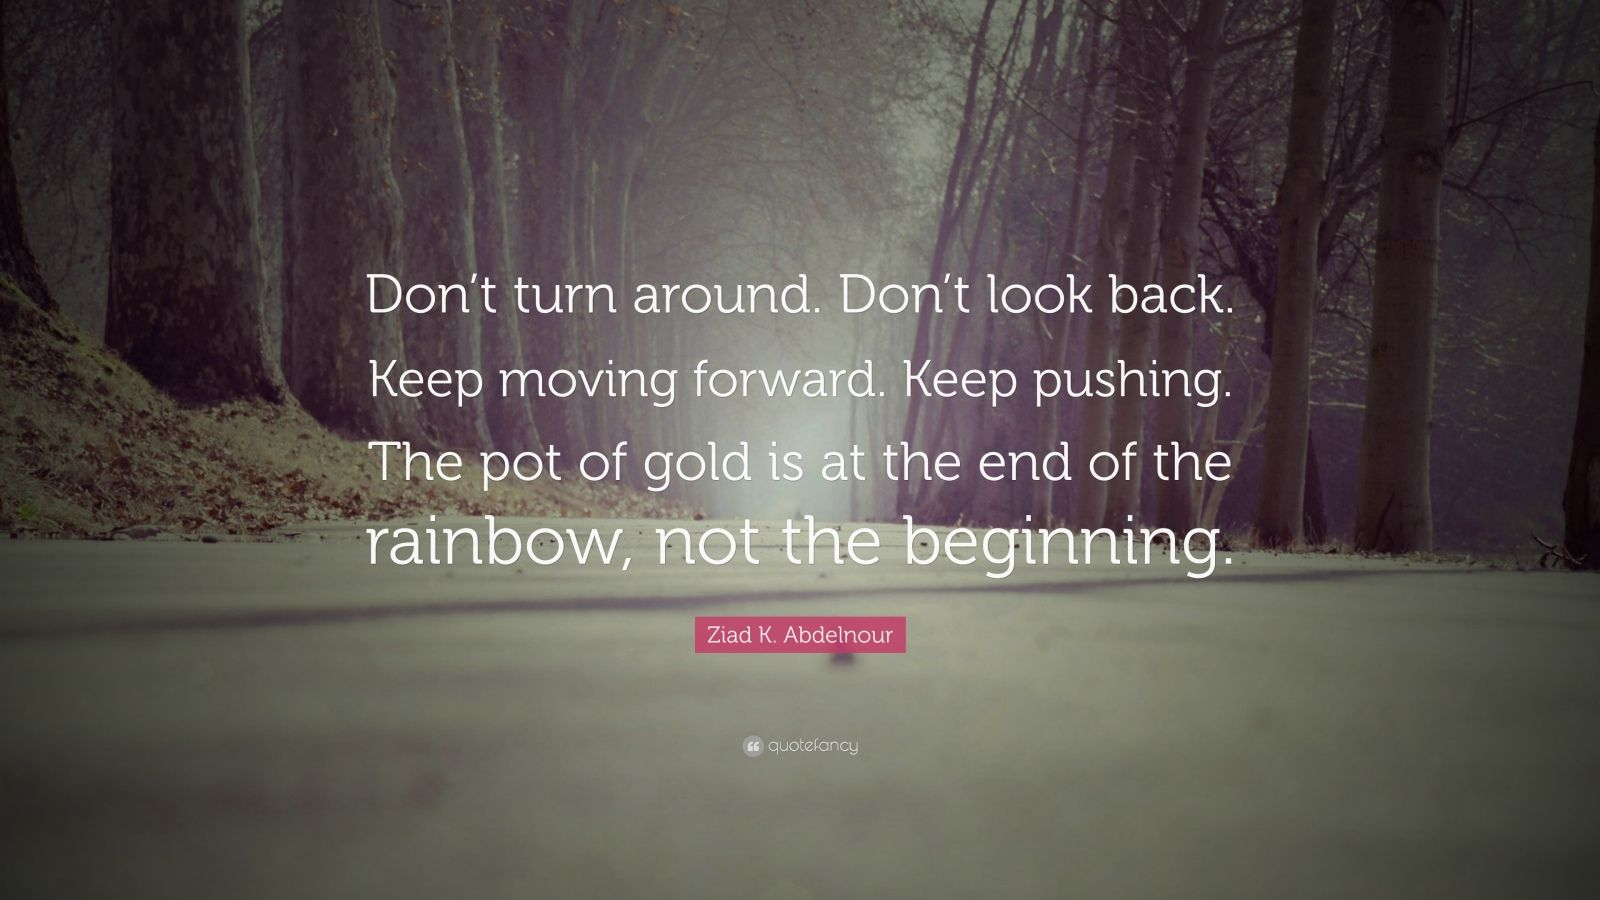 "Ziad K. Abdelnour Quote: ""Don't turn around. Don't look back. Keep moving forward. Keep pushing. The pot of gold is at the end of the rainbow, not the beginning."""